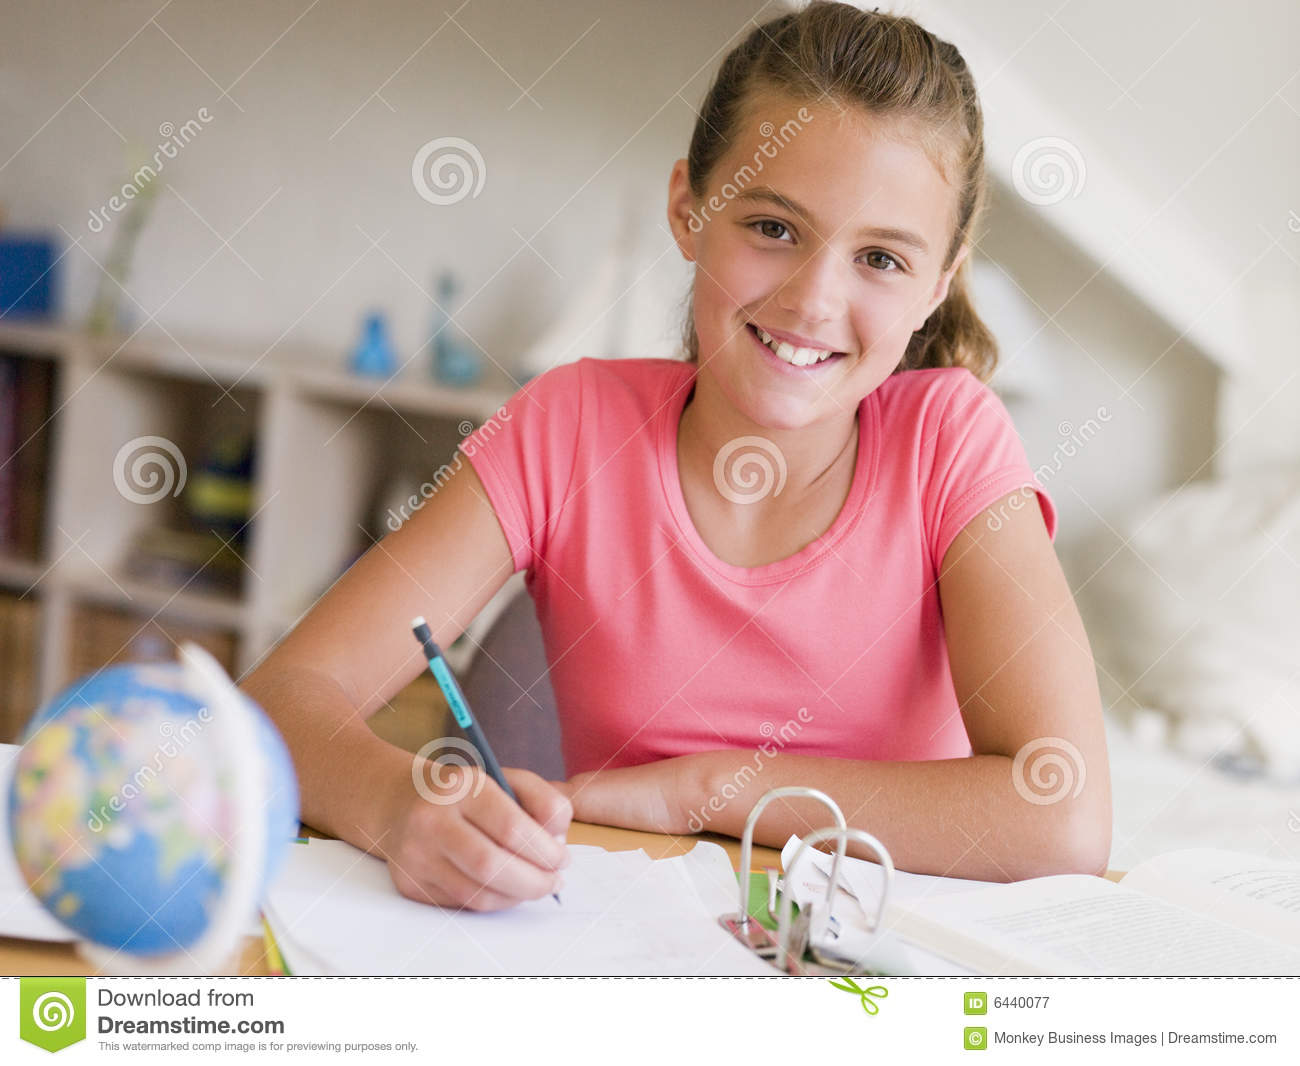 ... Doing Her Homework Royalty Free Stock Photography - Image: 6440077: dreamstime.com/royalty-free-stock-photography-young-girl-doing-her...